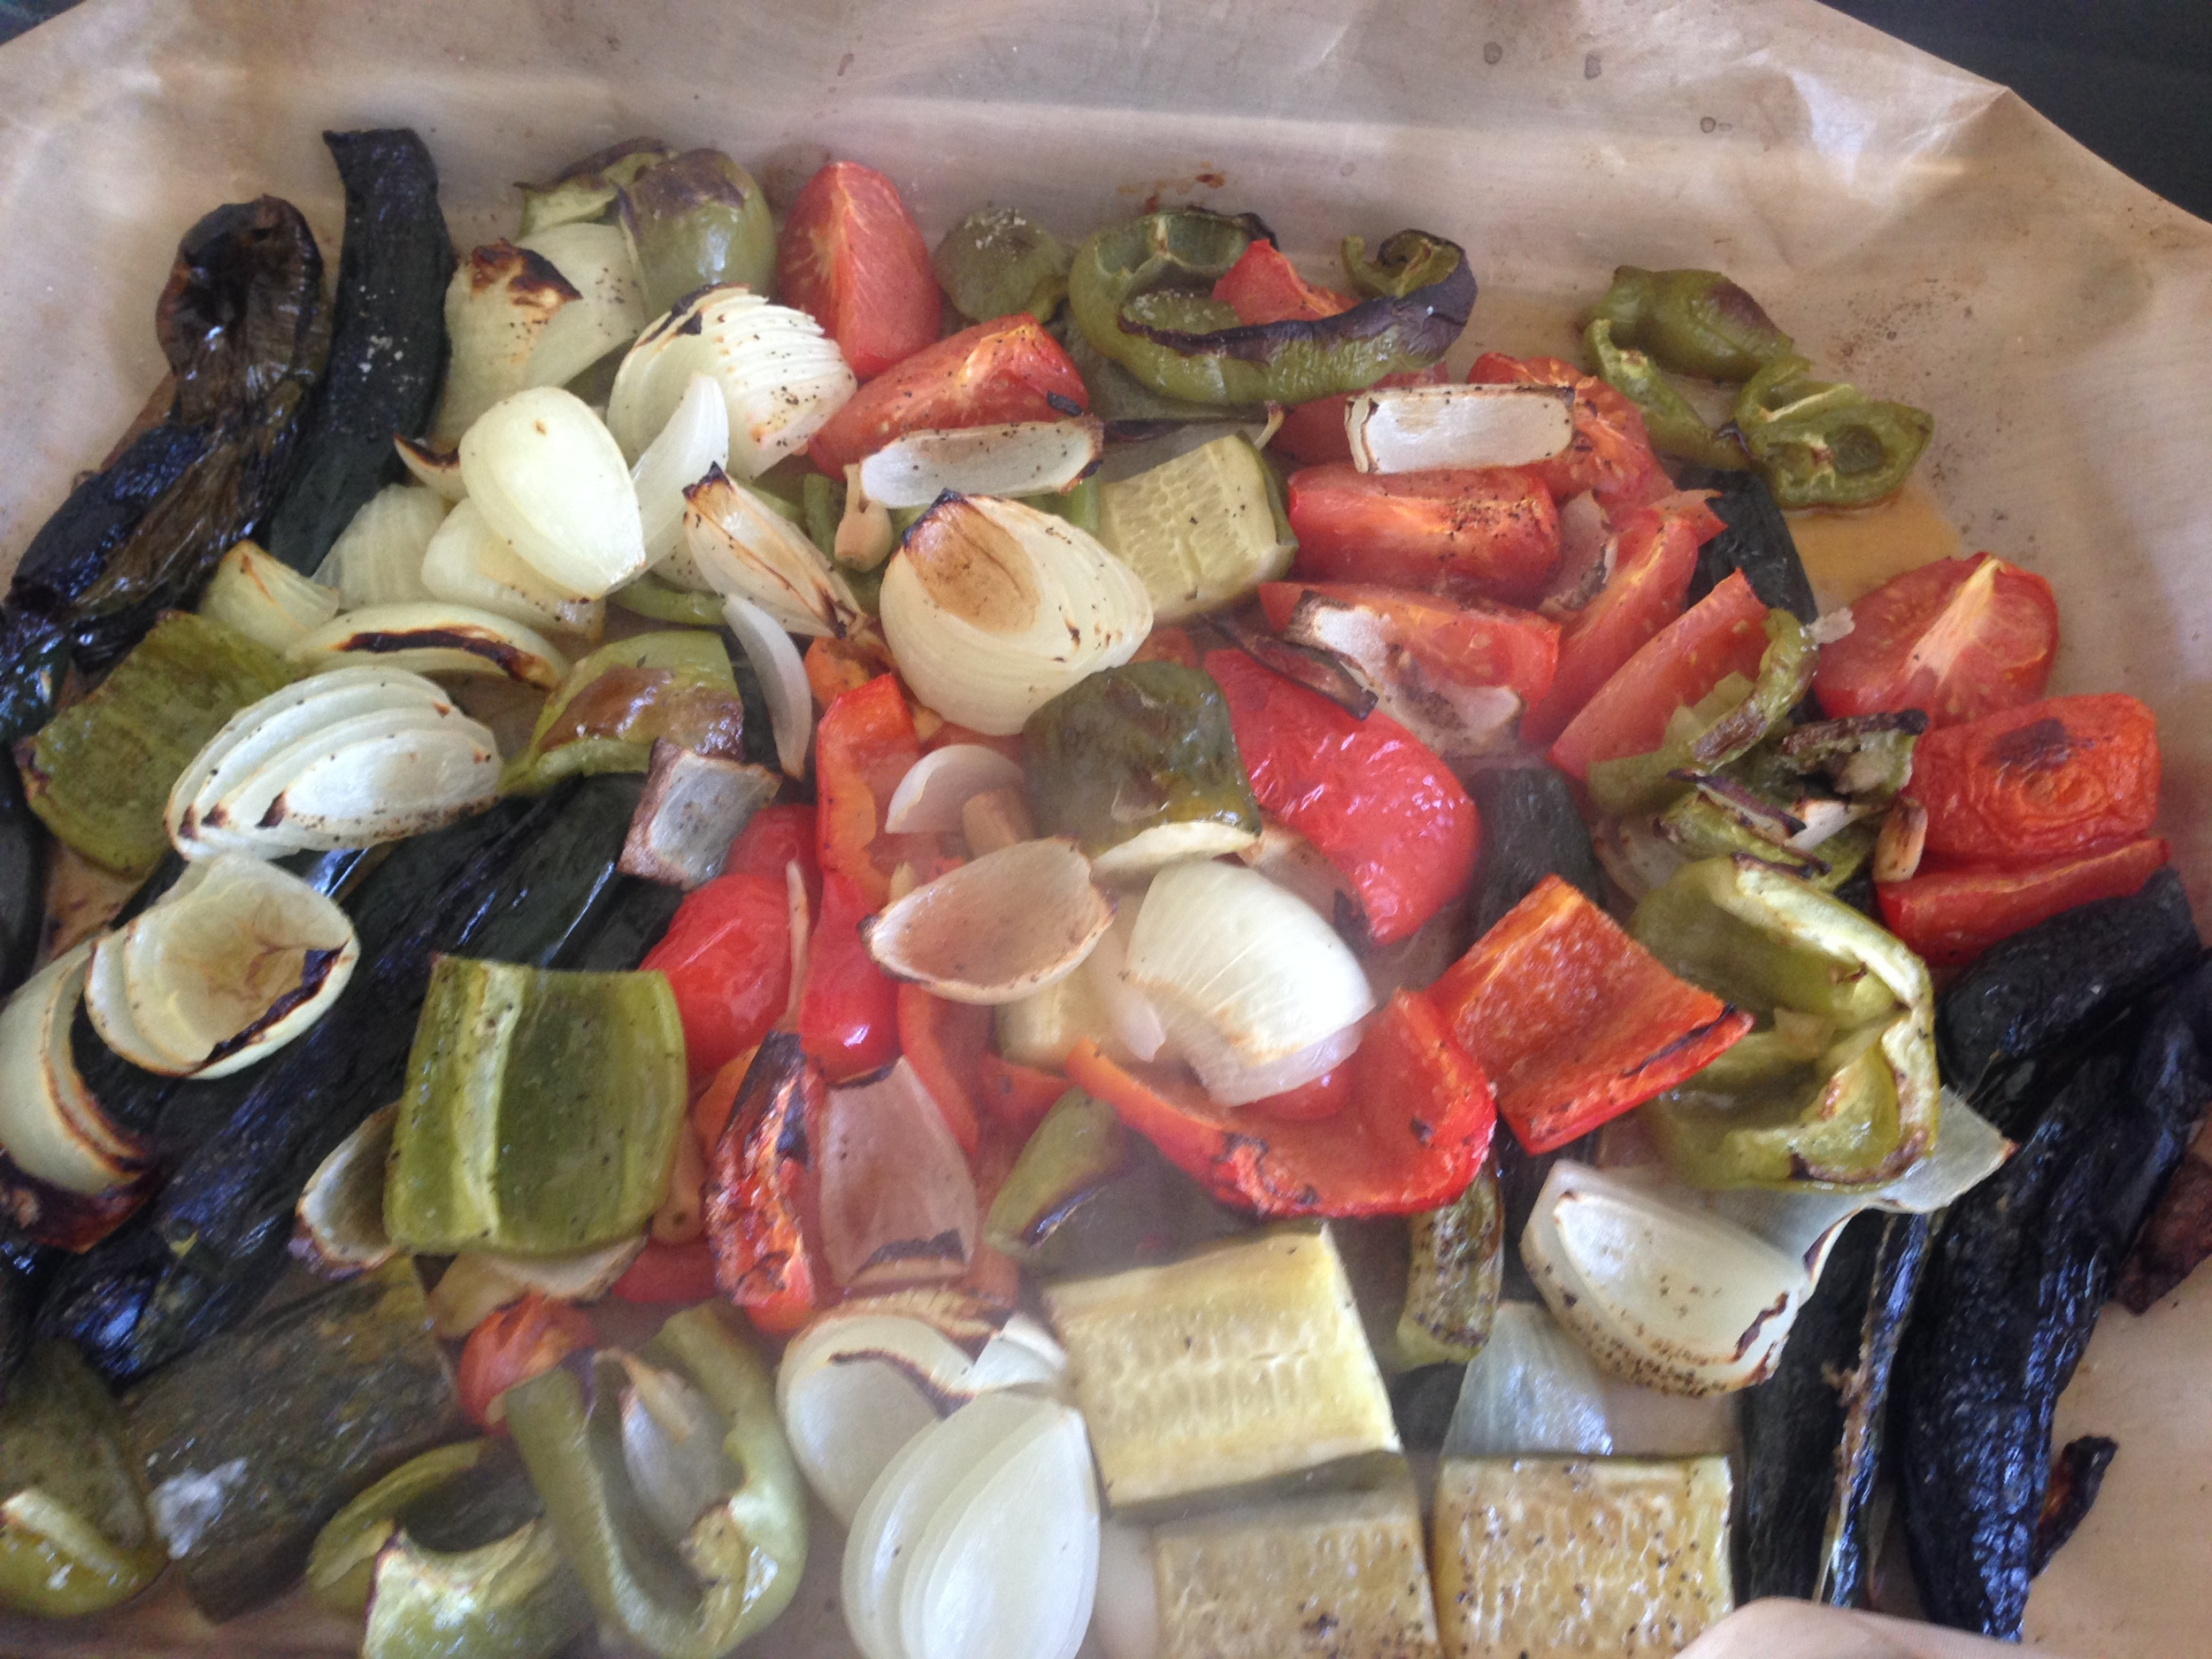 """David's fuming roasted vegetables (onions, cucumbers, bell peppers, chilaca chile peppers, garlic and tomatoes)before they were """"salsaed"""" by the food processor! It turned out super tasty with just the right touch of spiciness!"""